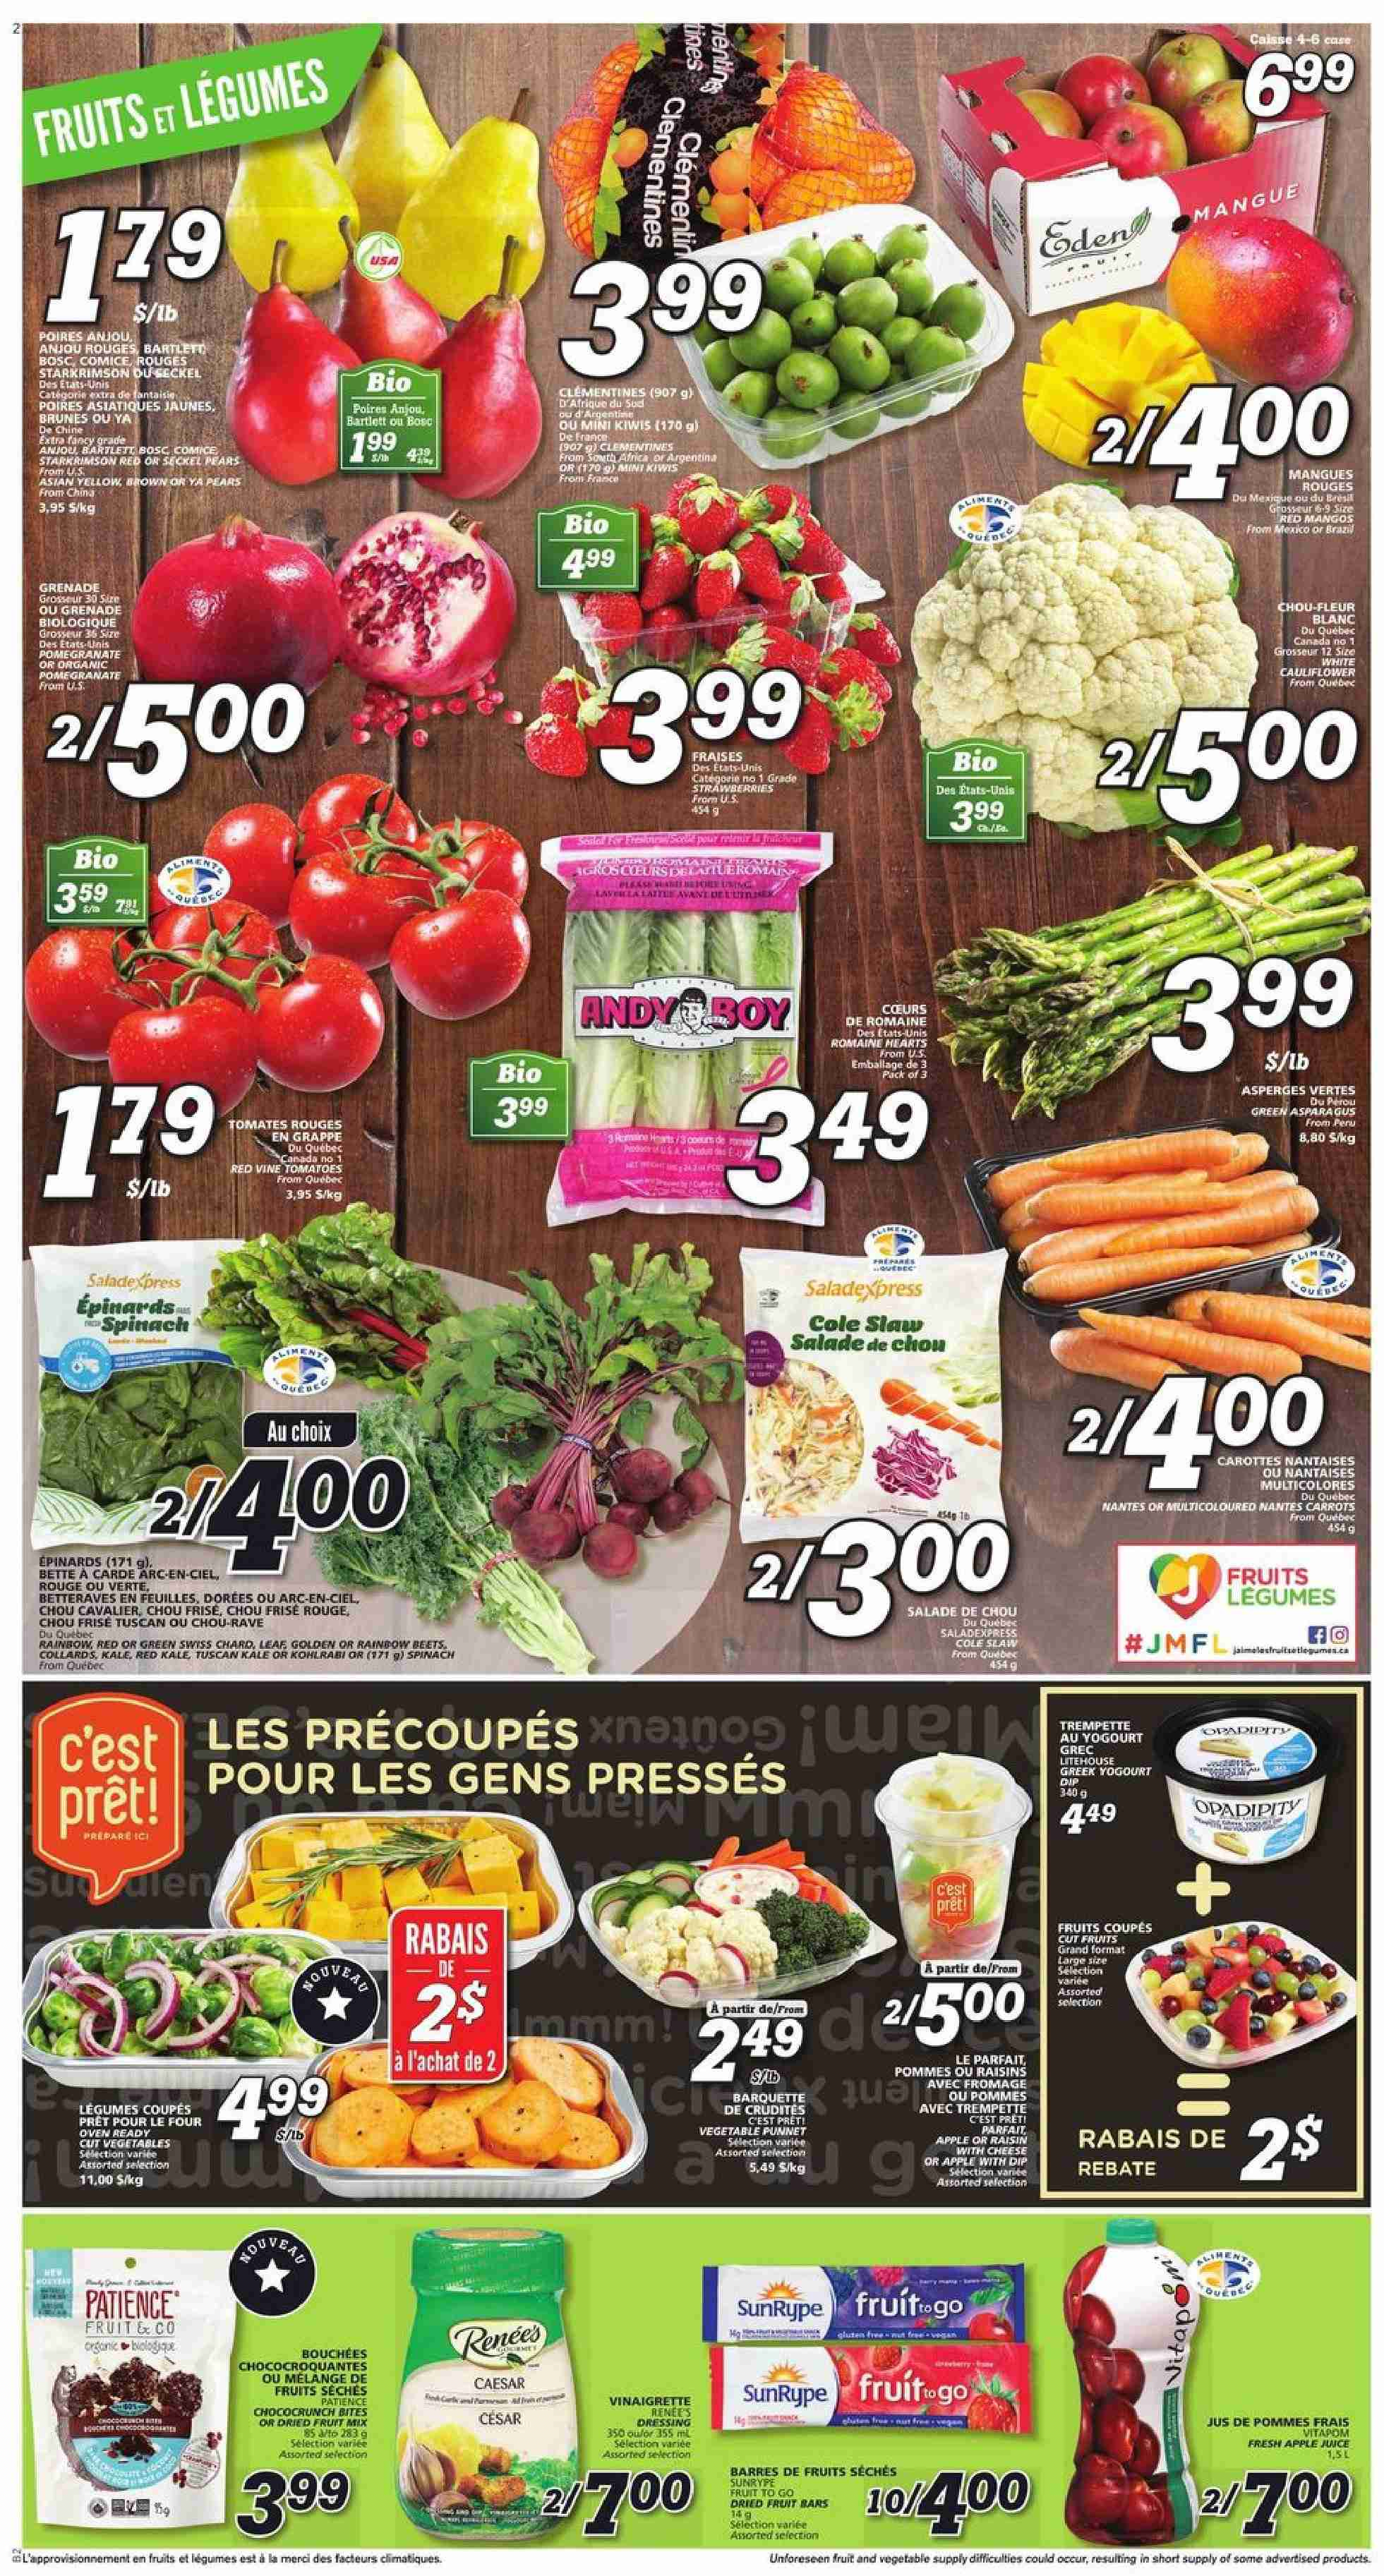 IGA Flyer  - October 18, 2018 - October 24, 2018. Page 2.